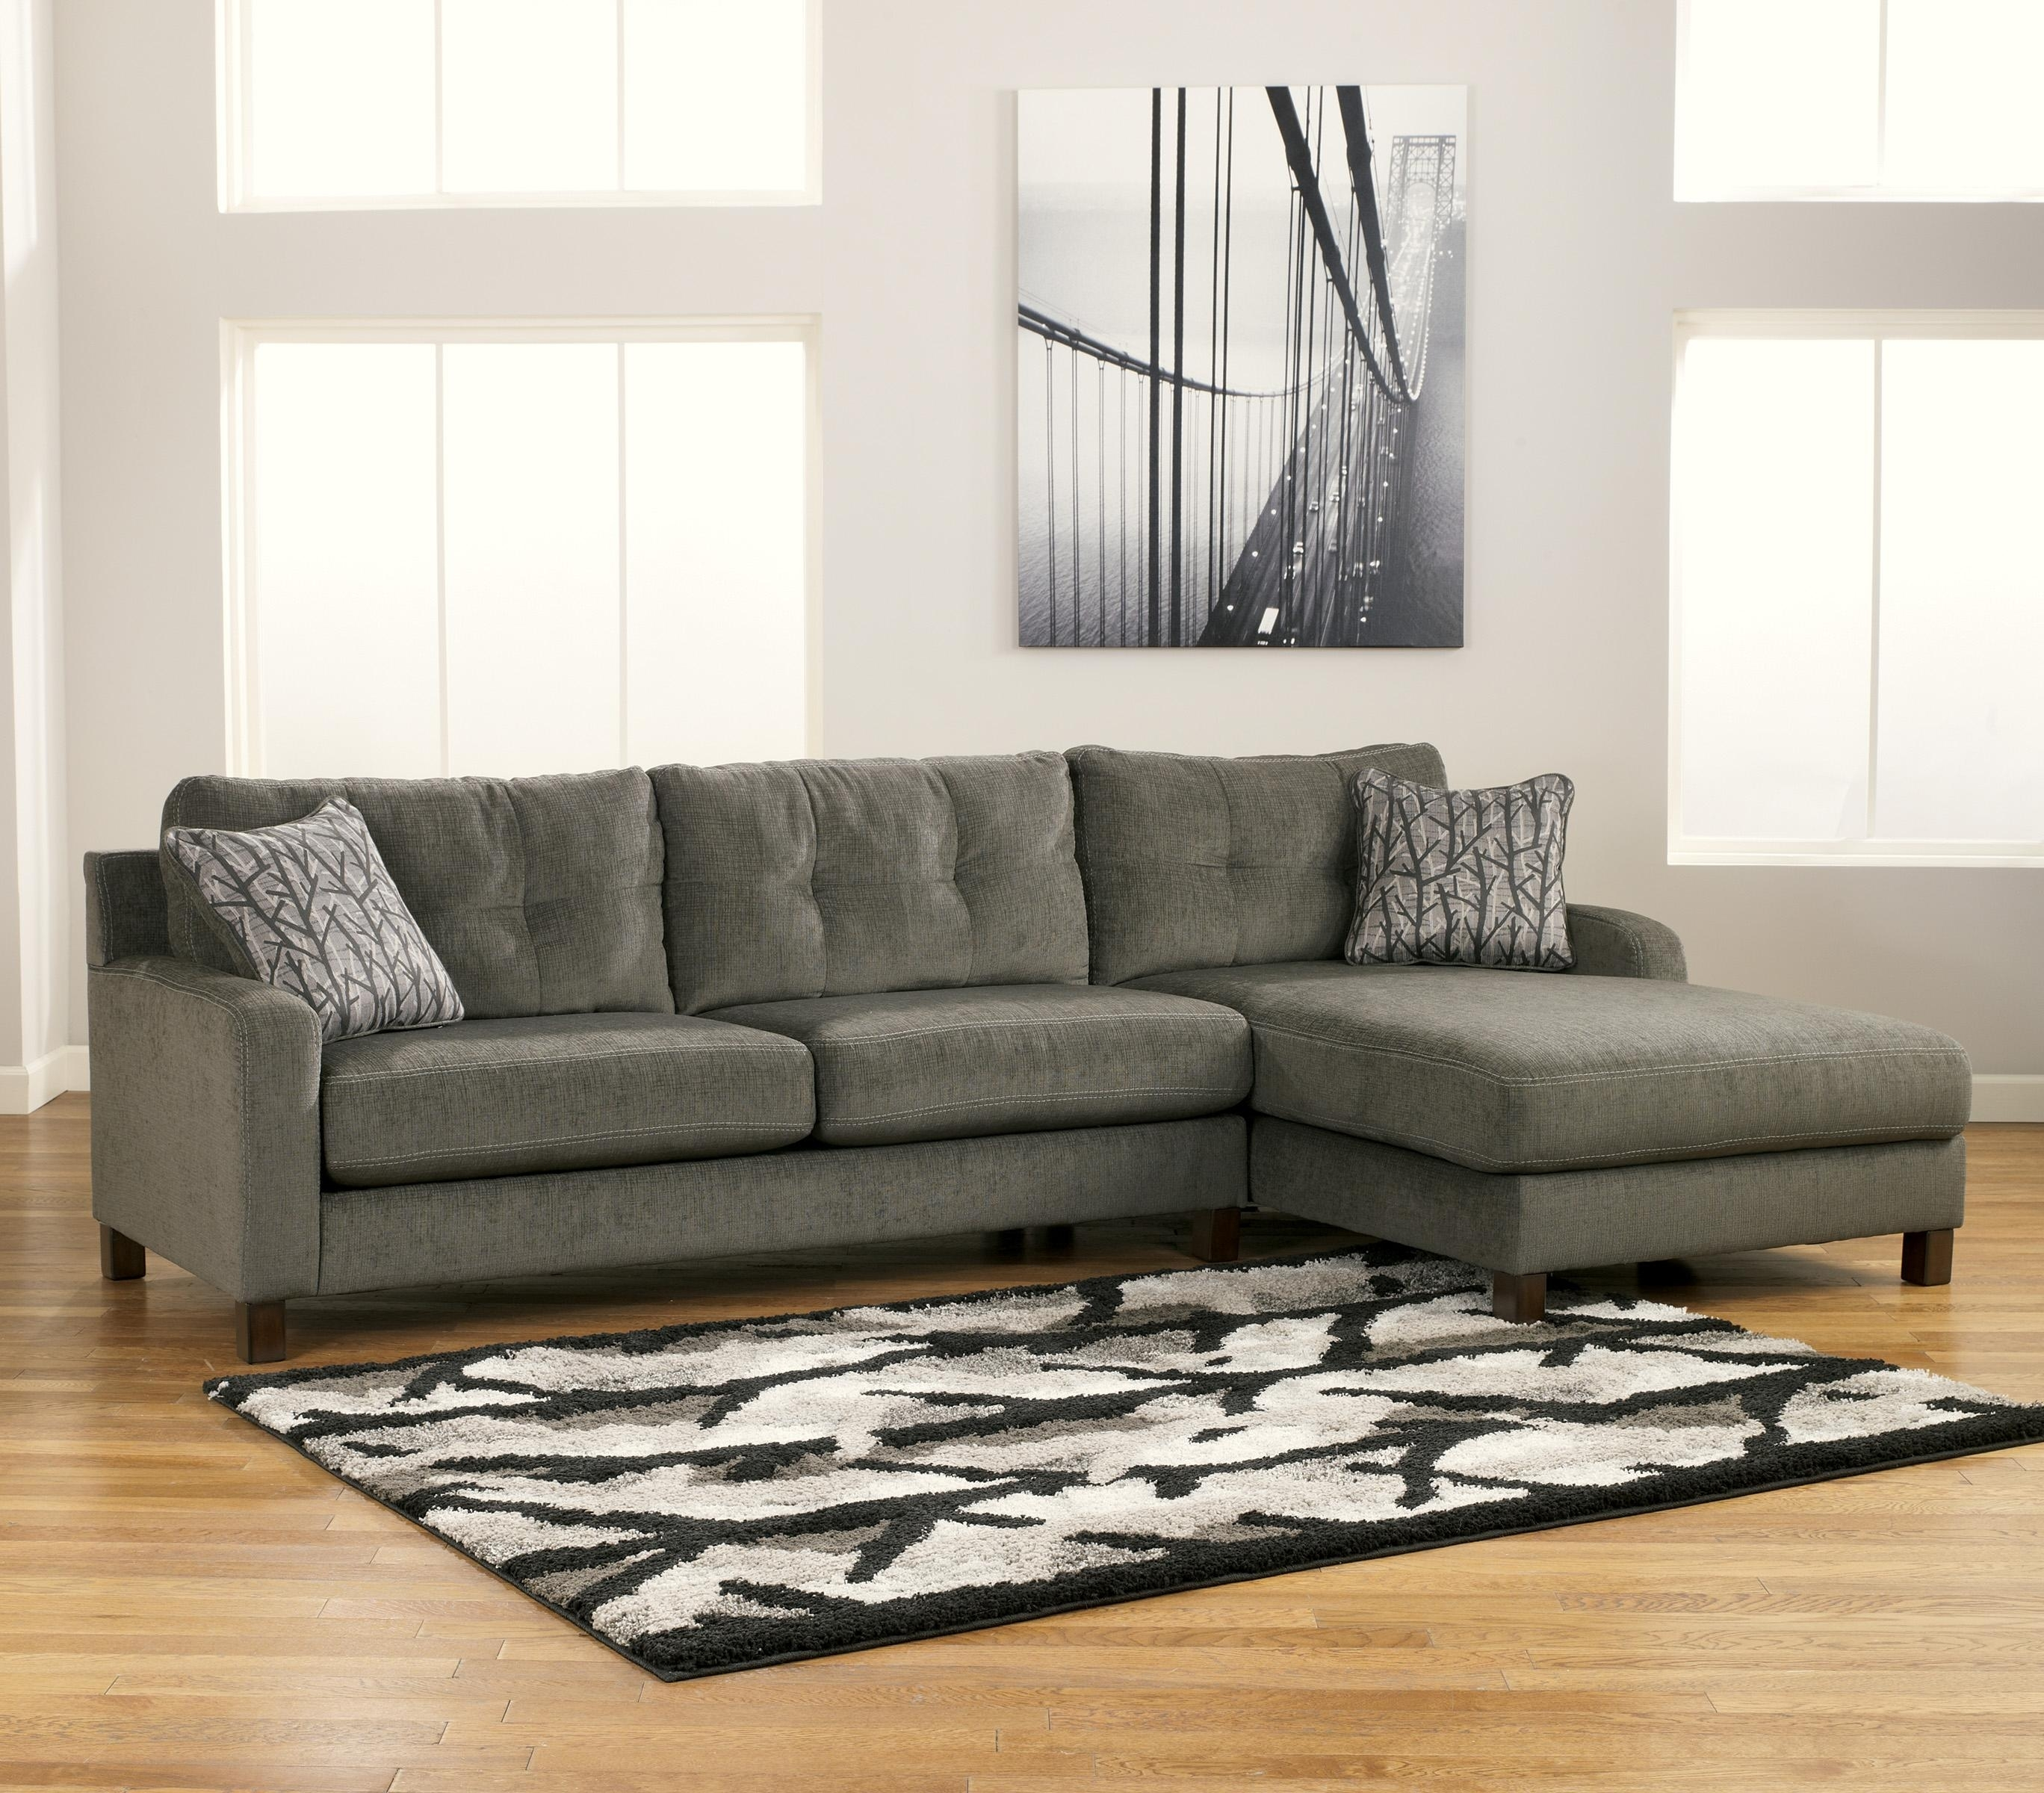 Signature Designashley Siroun – Steel Contemporary 2 Piece Inside Norfolk Grey 3 Piece Sectionals With Laf Chaise (Image 24 of 25)